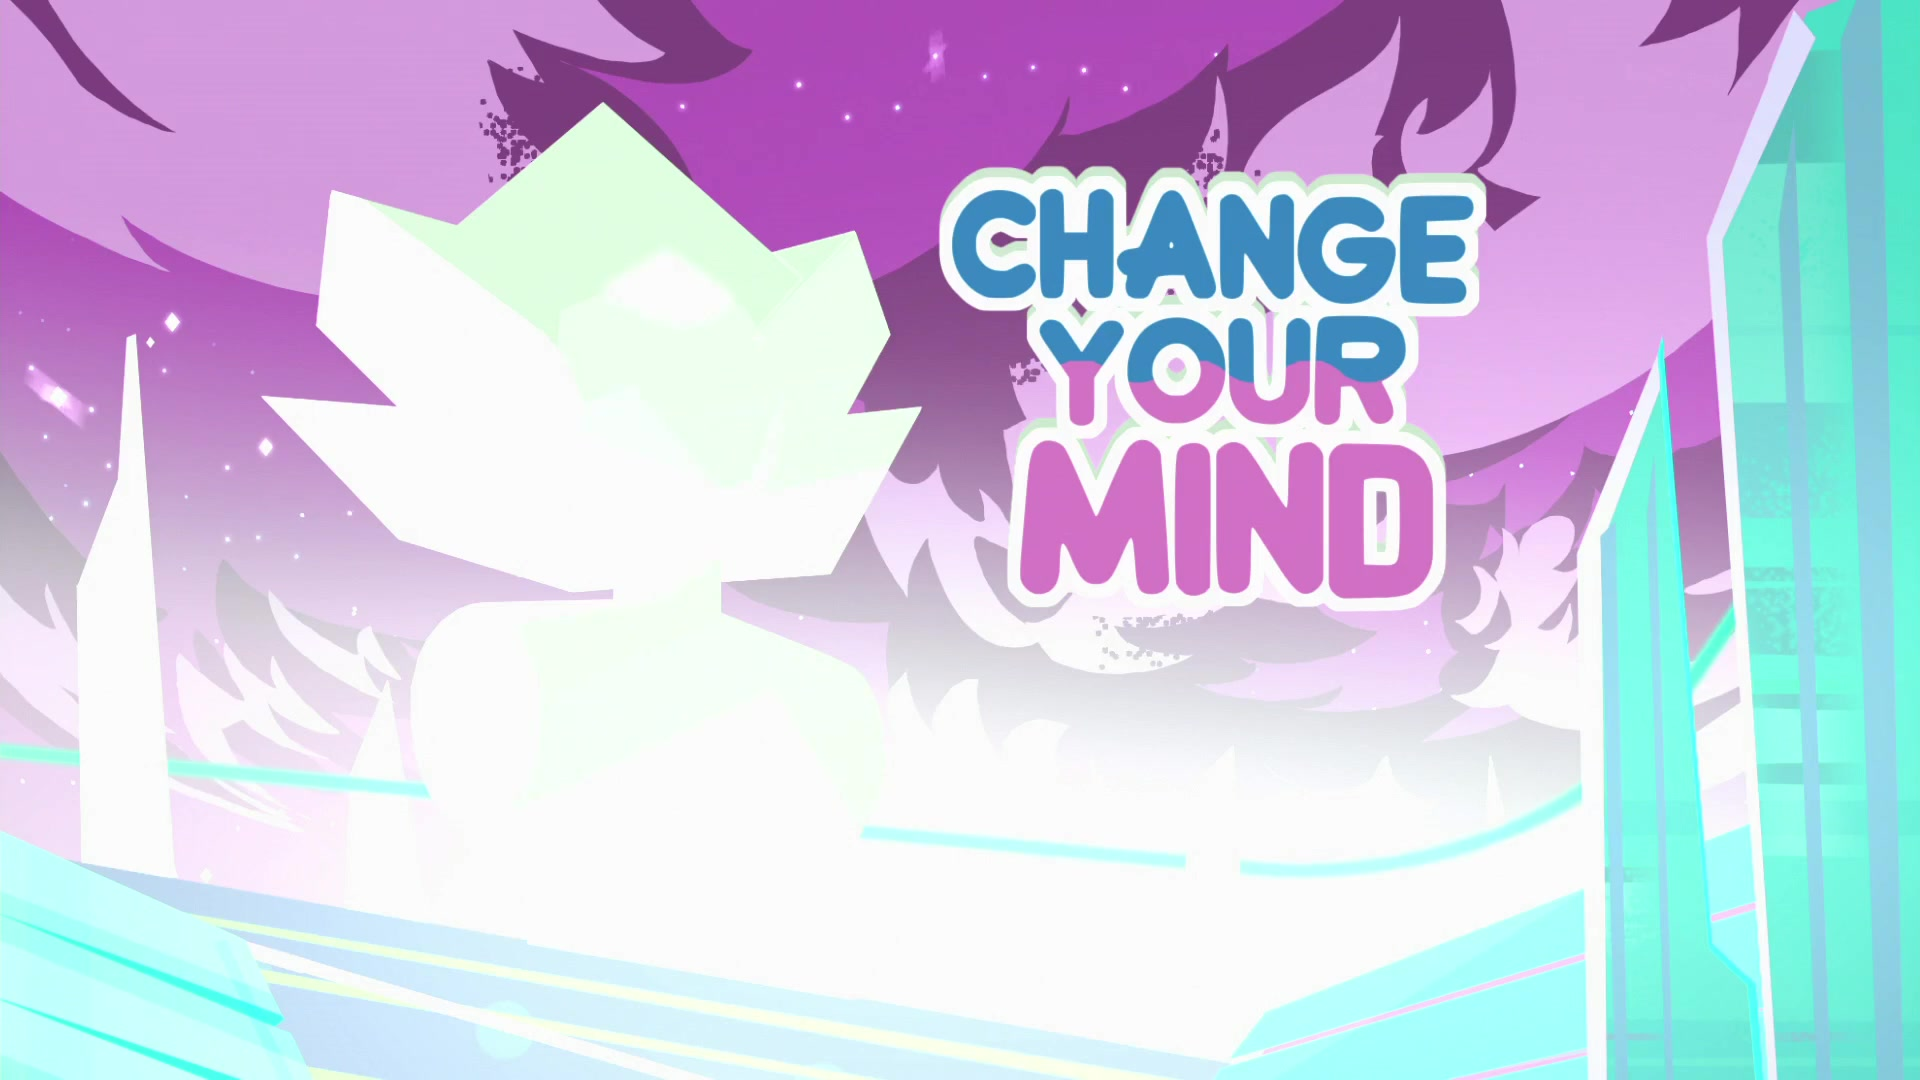 Change Your Mind (episode)/Gallery